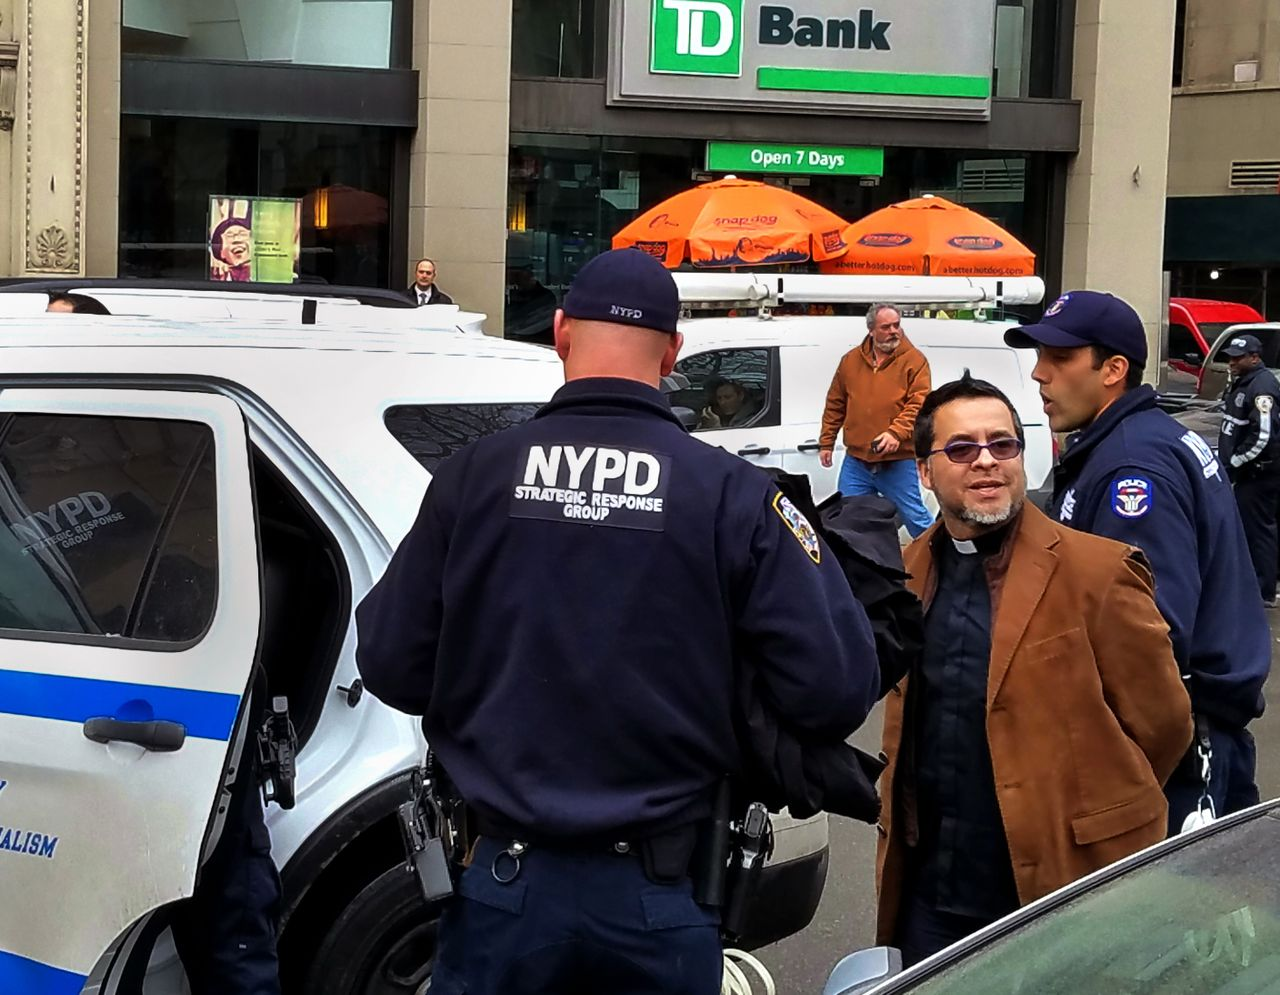 Activist detained and 18 arrested at Manhattan immigrant rights protest